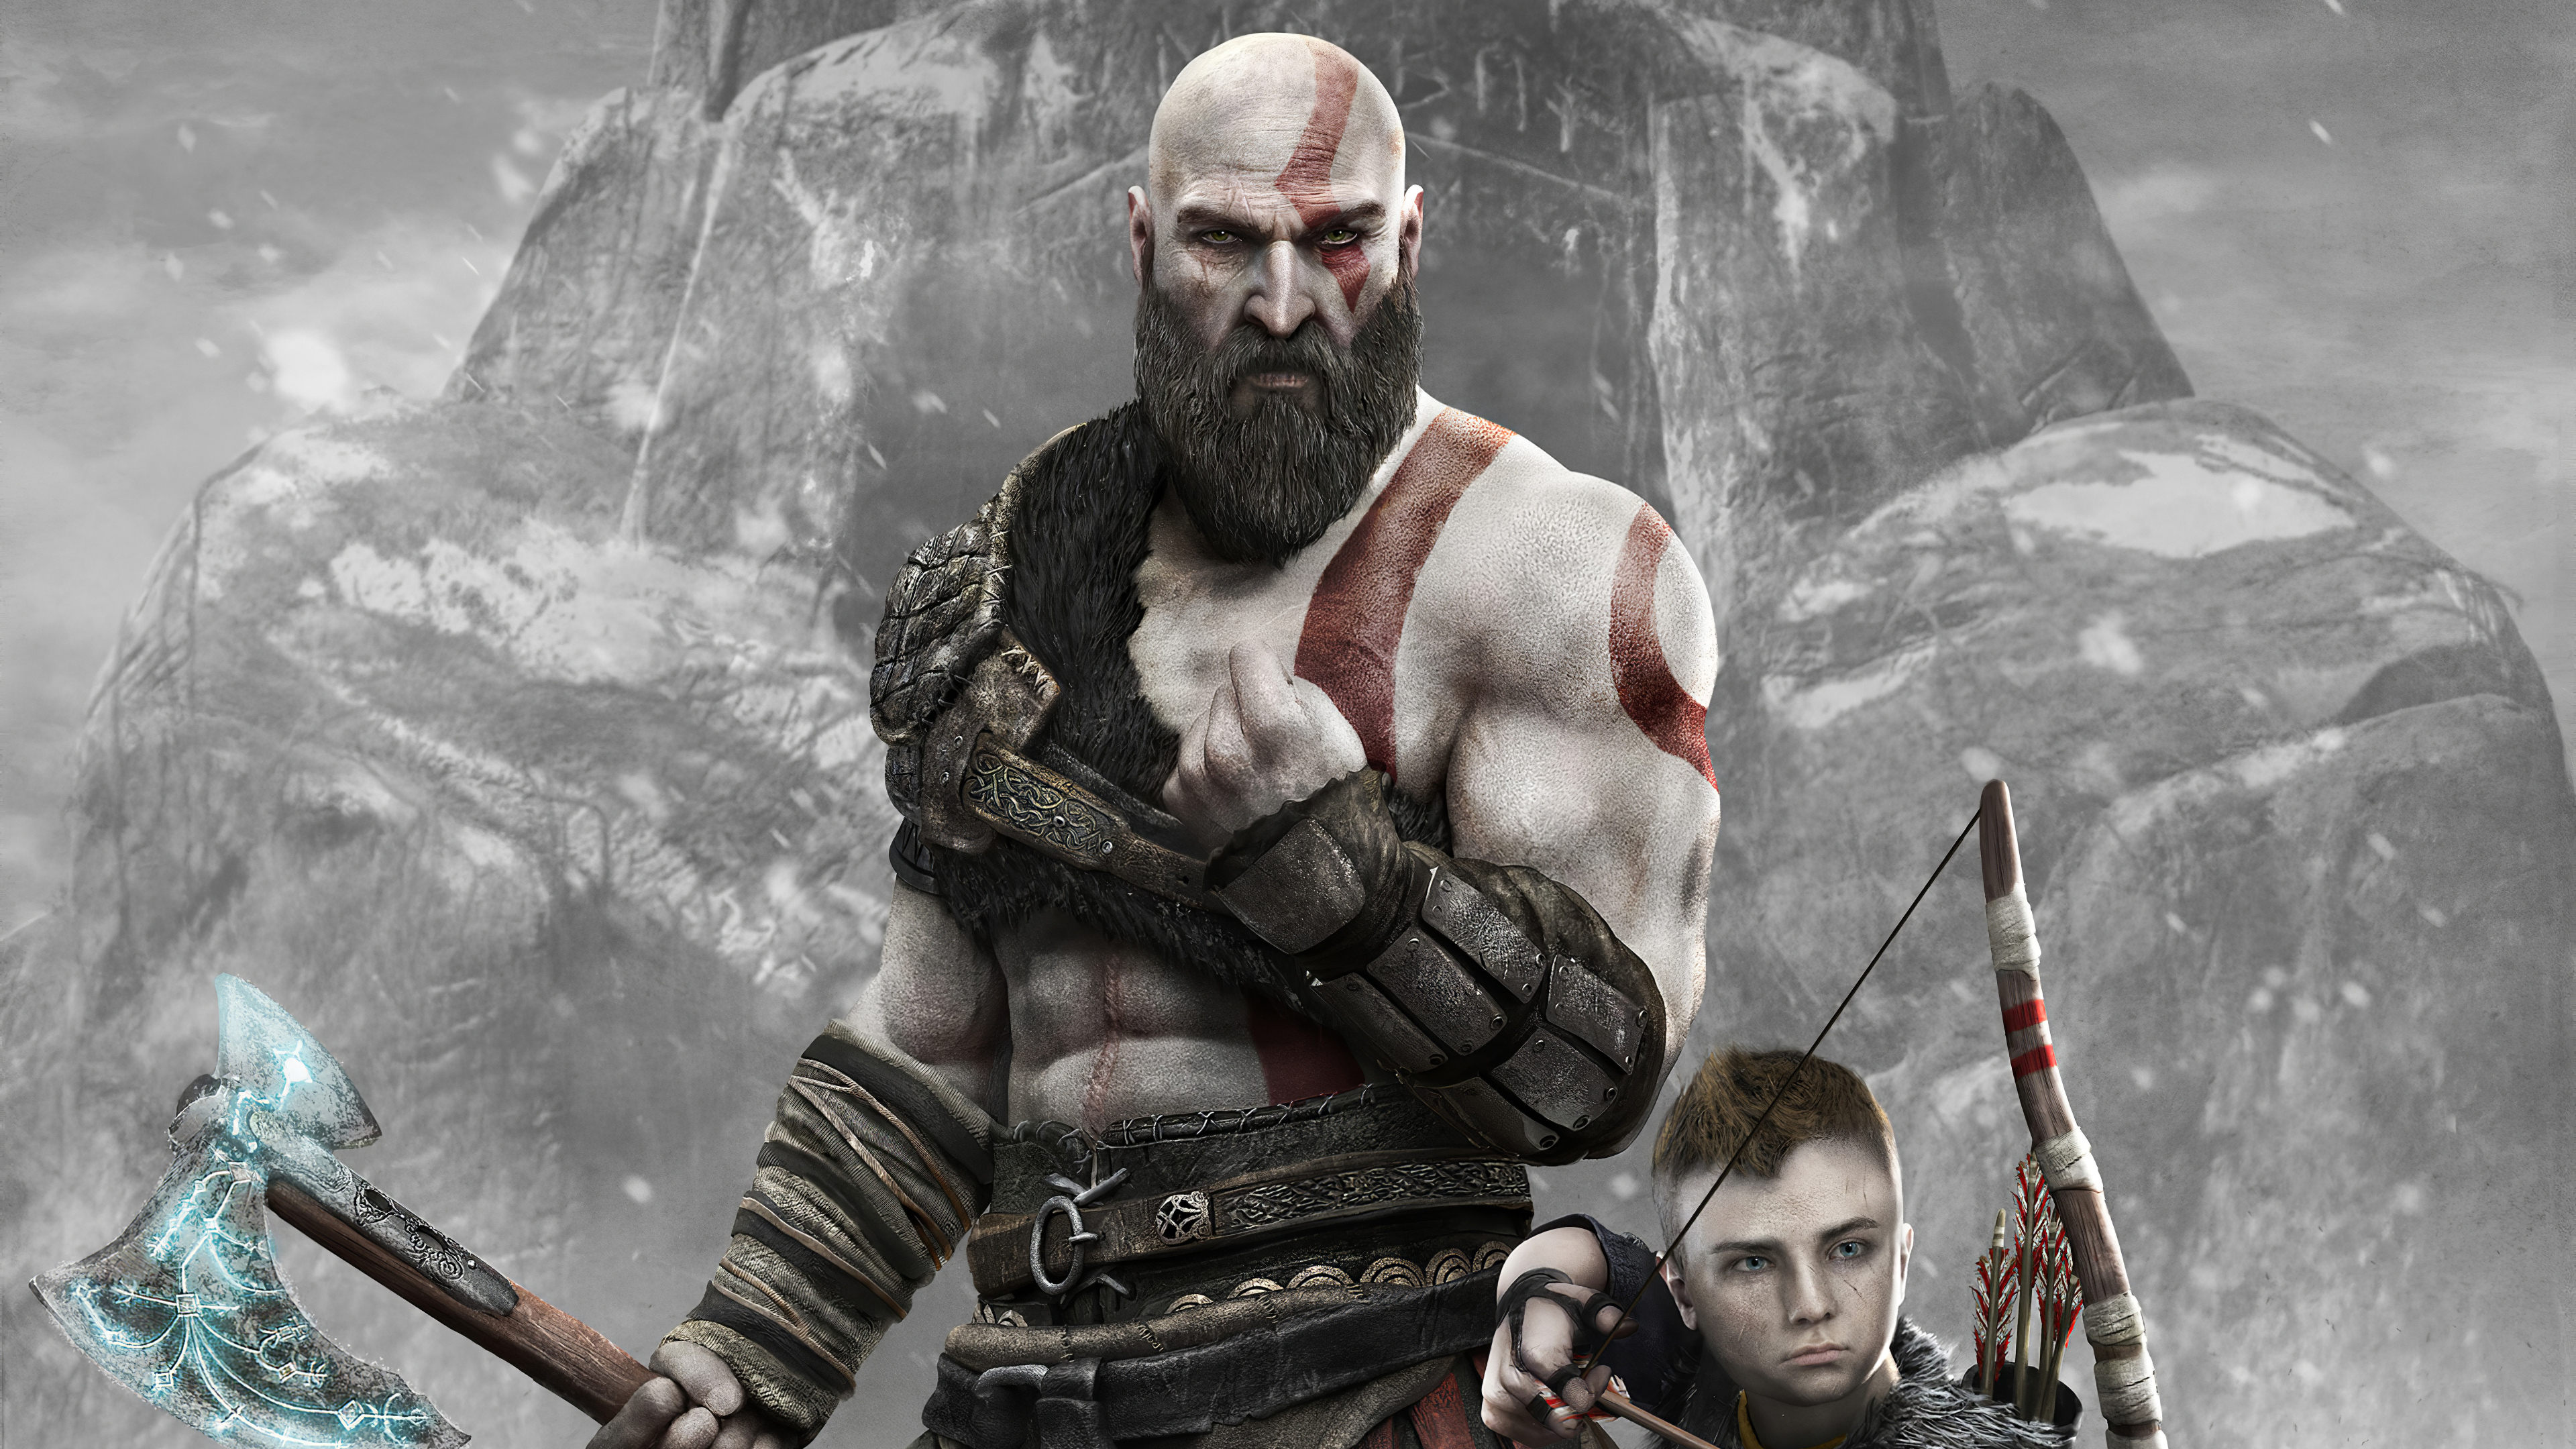 god of war 1578854644 - God Of War - God Of War kratos with boy wallpaper 4k, God Of War game wallpaper 4k, God Of War 4k wallpaper